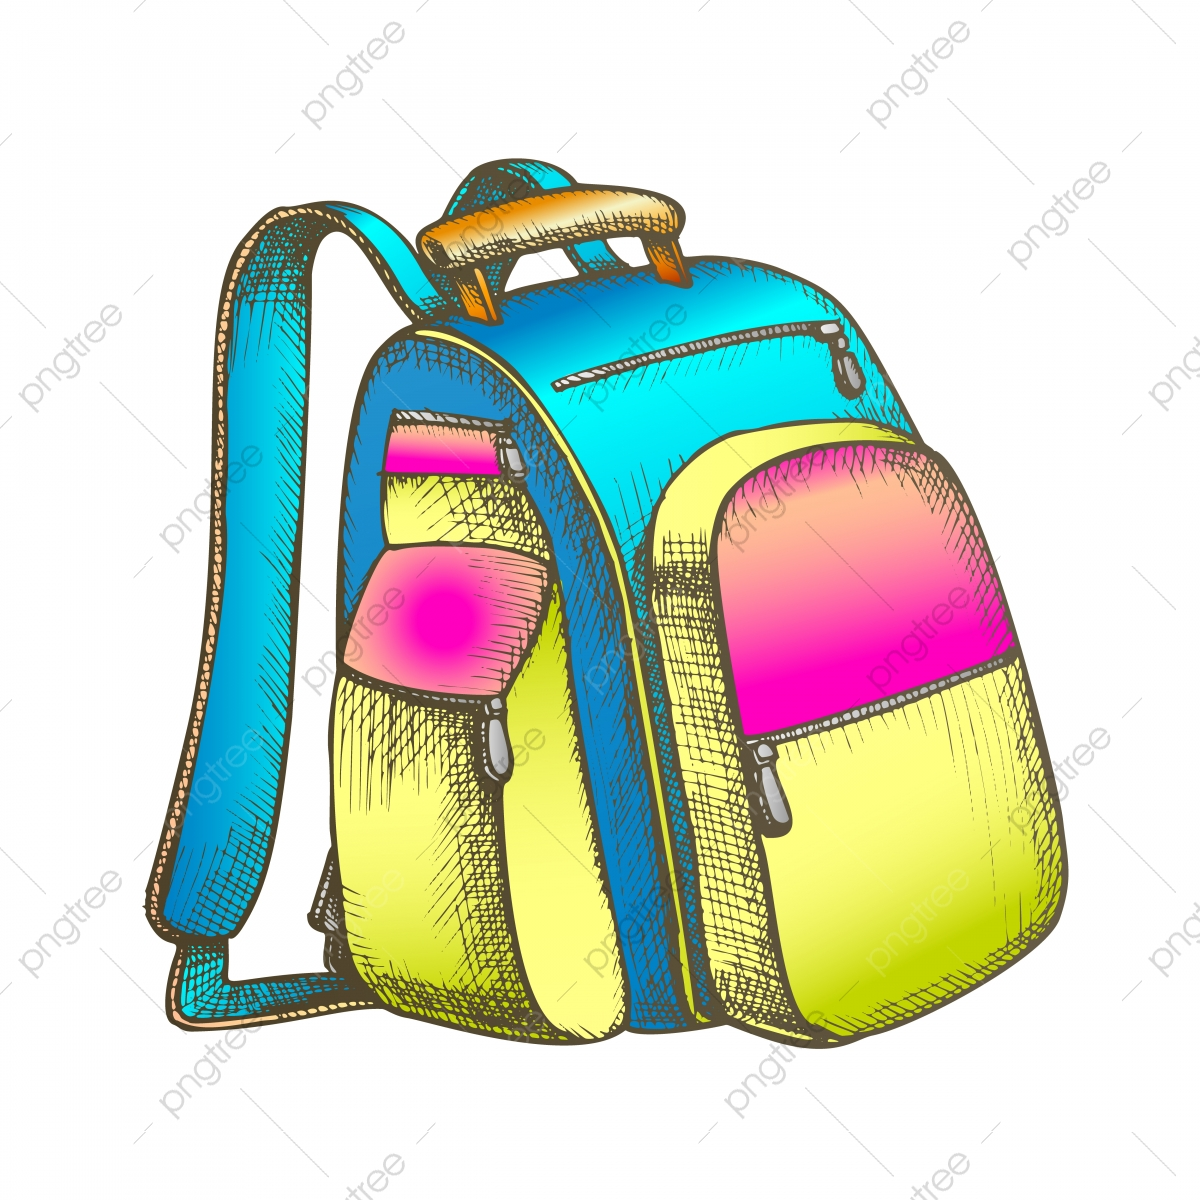 Modern Tourist Backpack Suitcase Color Vector Backpack Clipart Backpack Suitcase Png And Vector With Transparent Background For Free Download